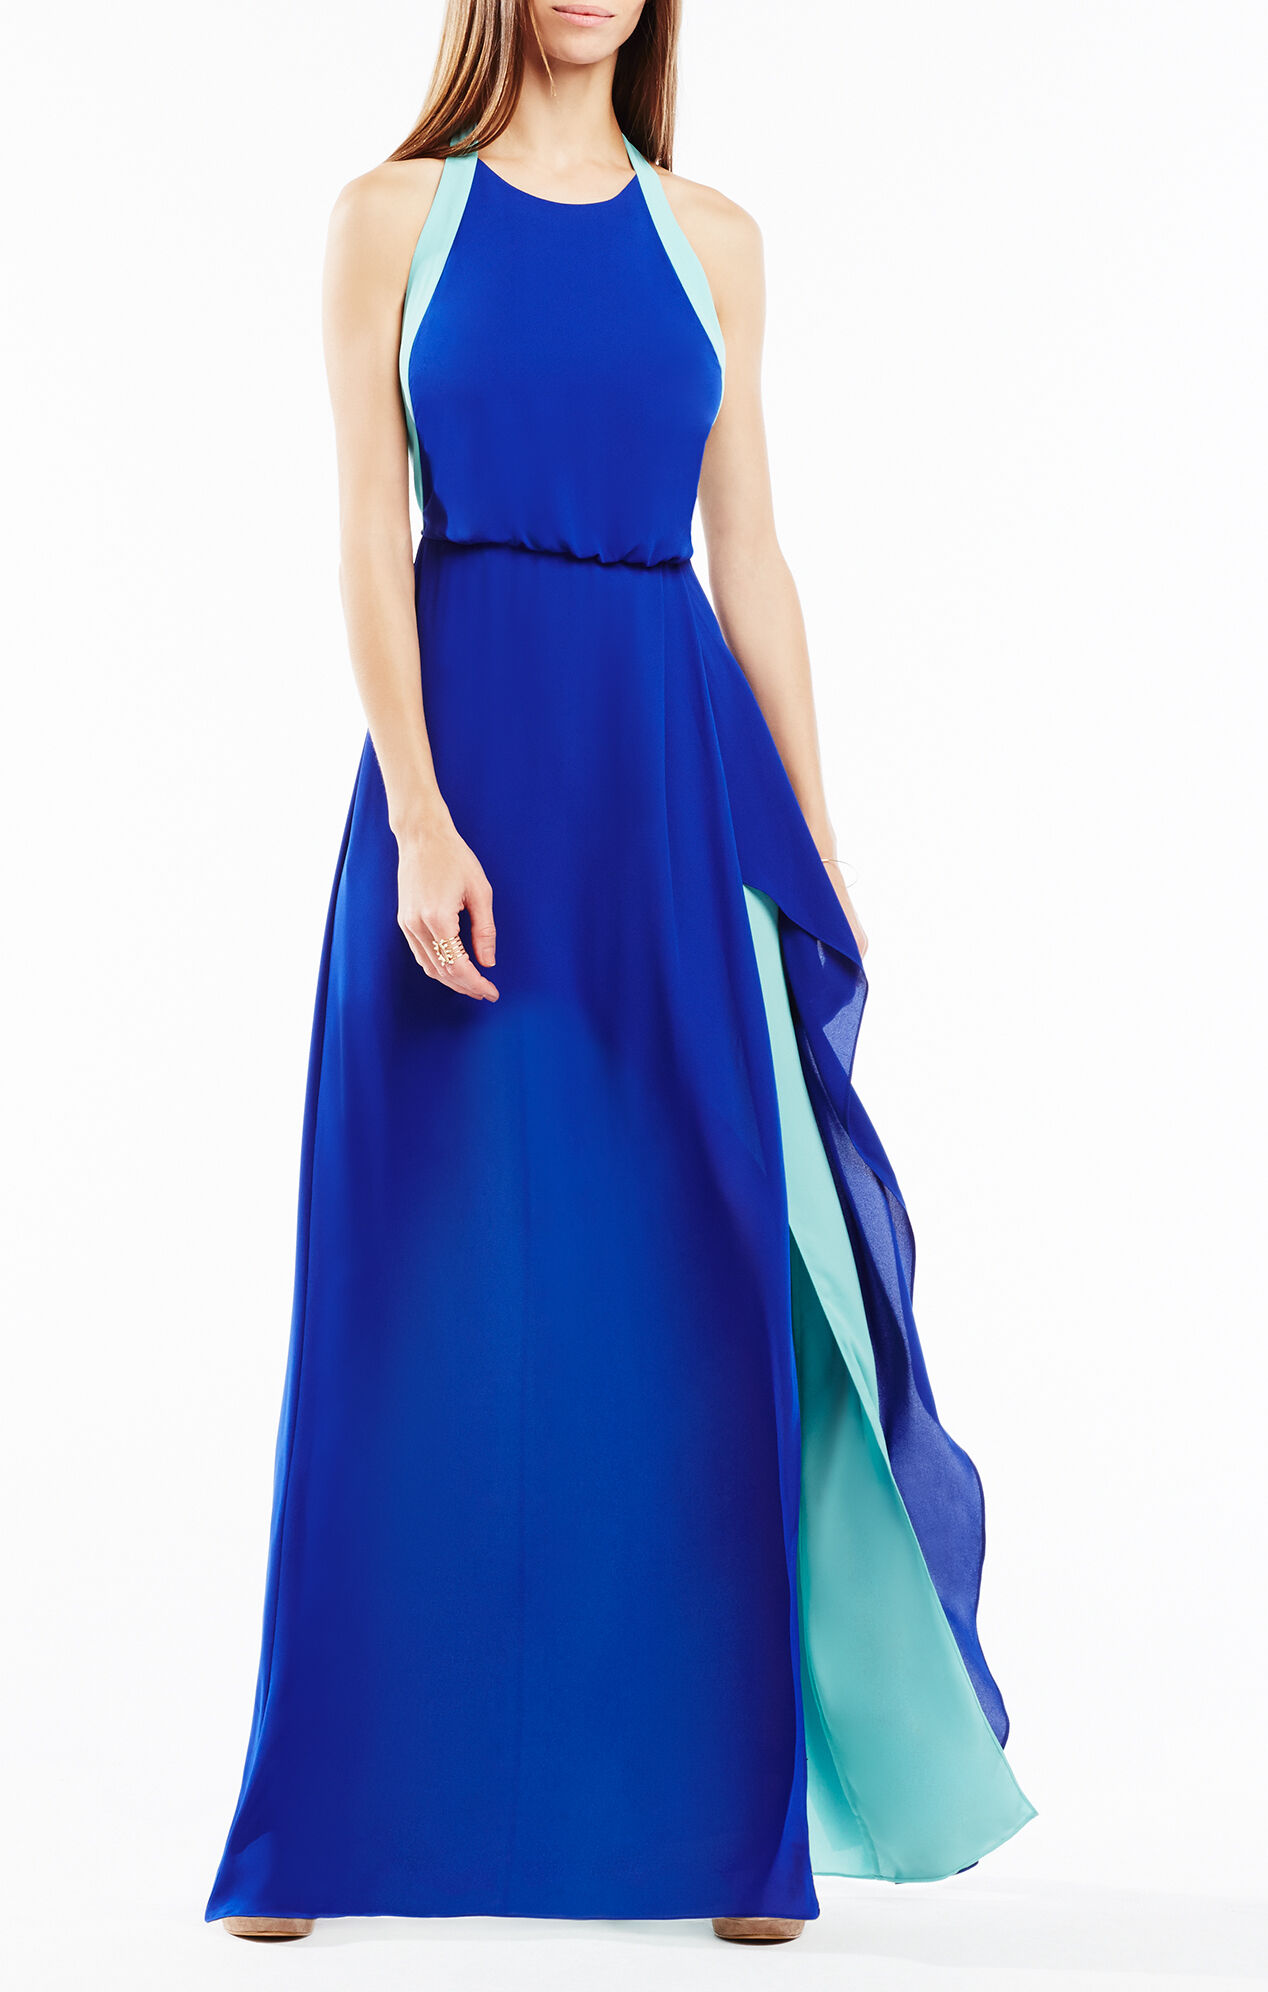 Bcbg colorblock perfection dress